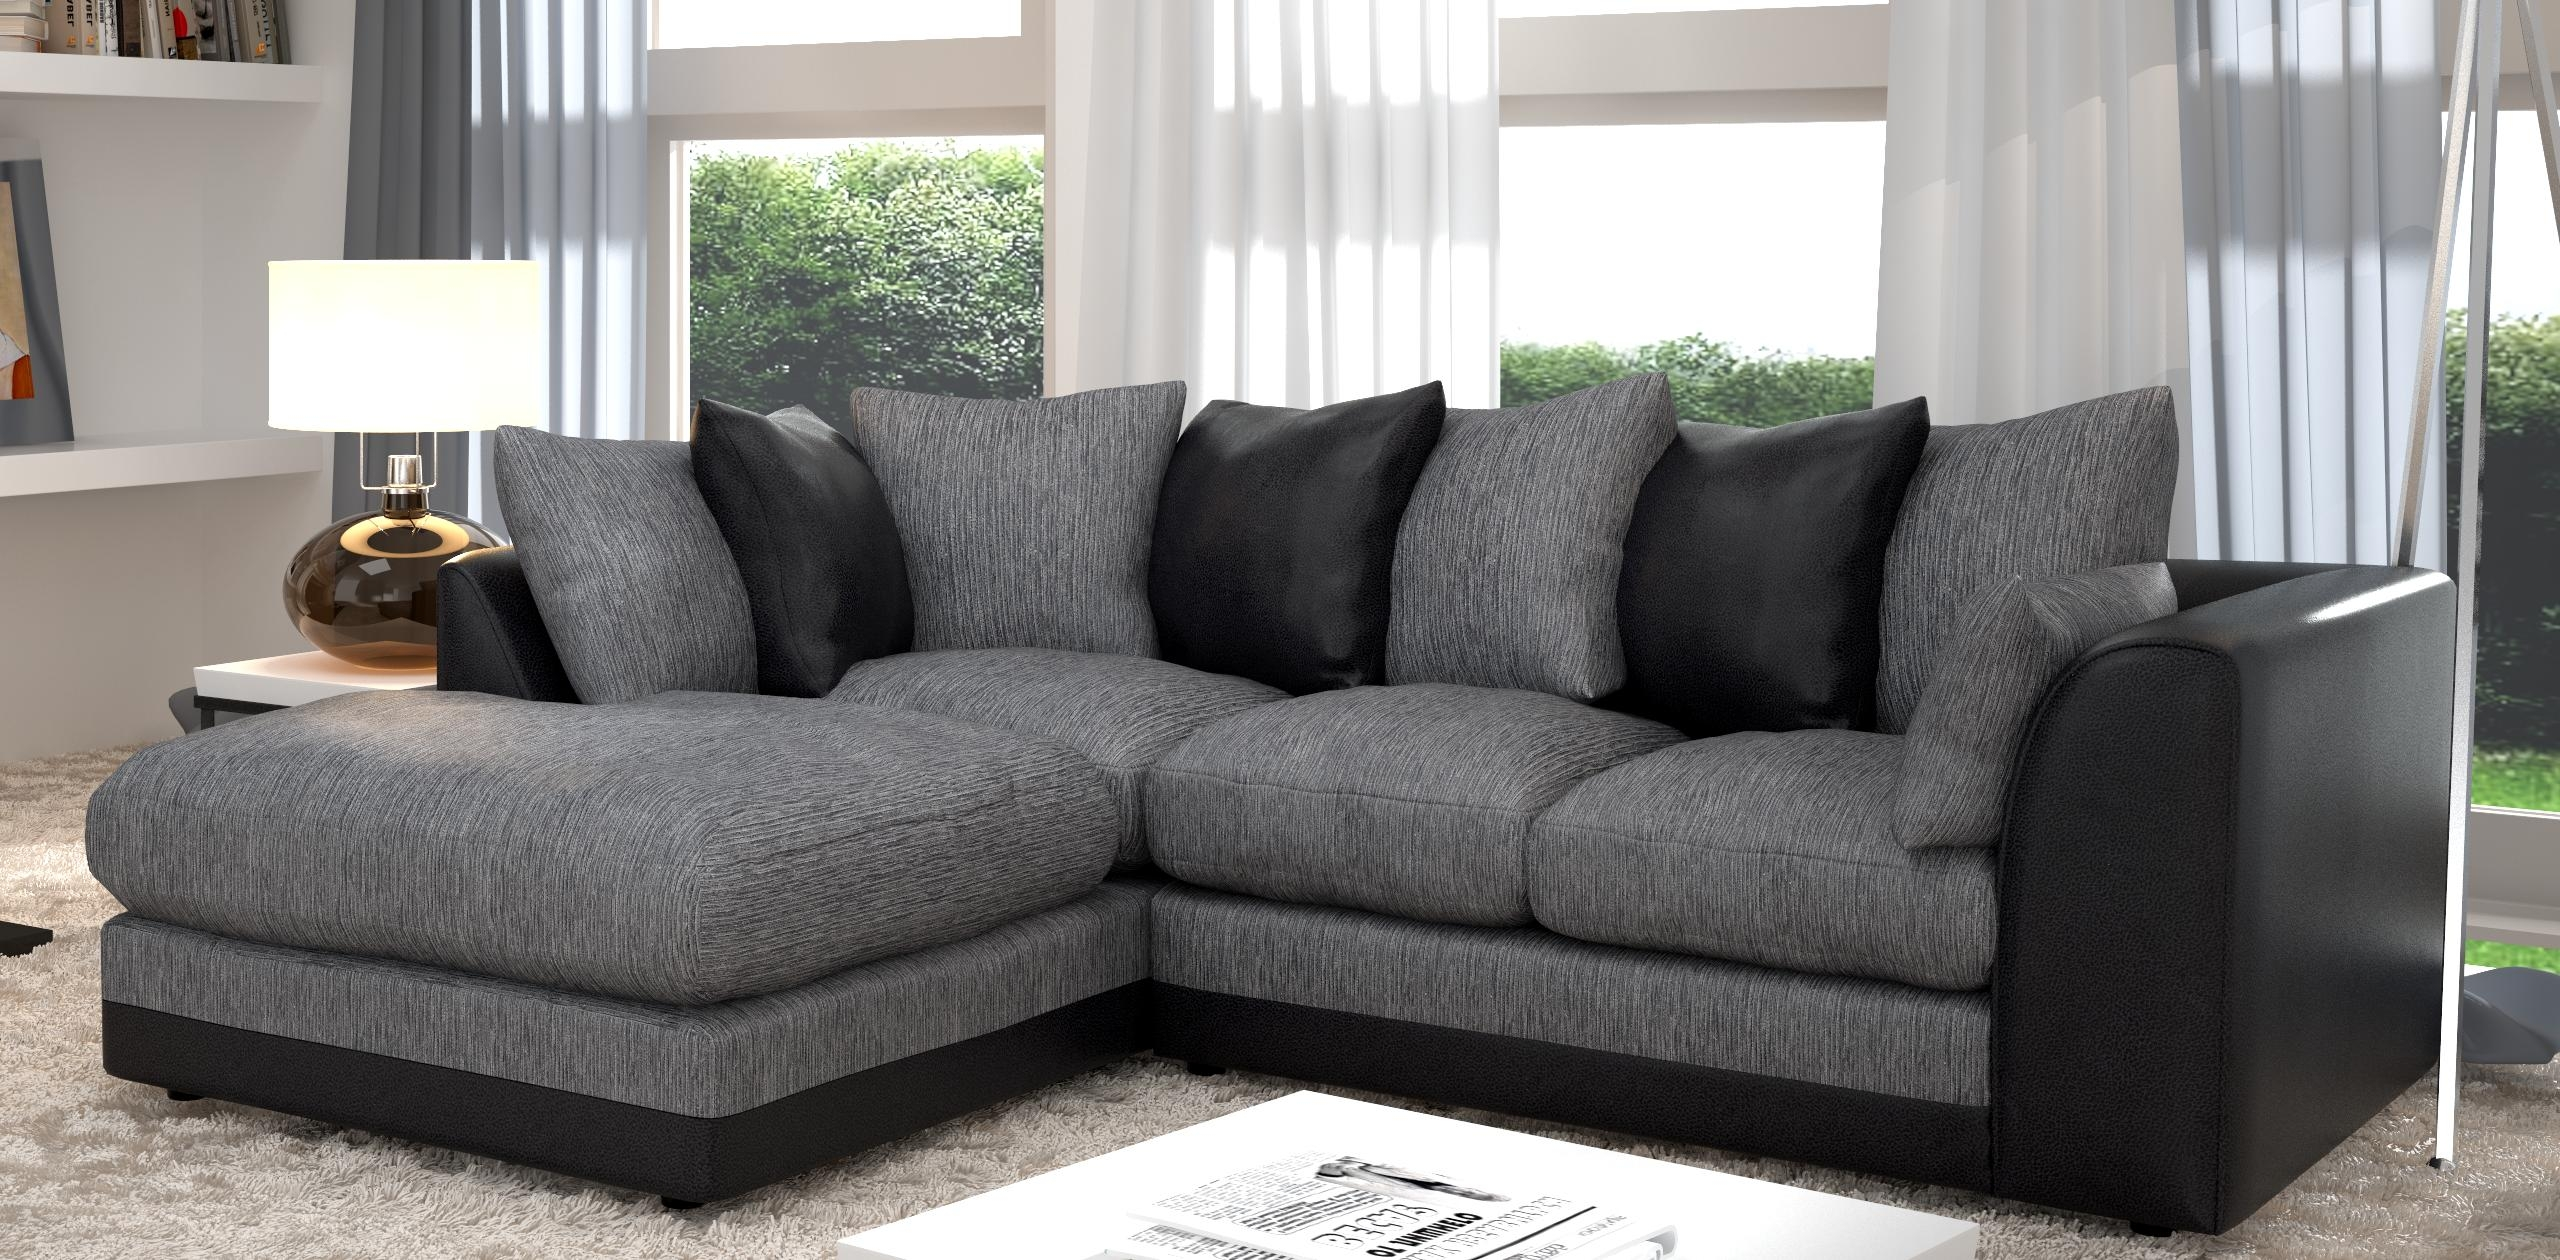 Grey Fabric Sofas Uk Grey Couch Wall Color (View 17 of 20)